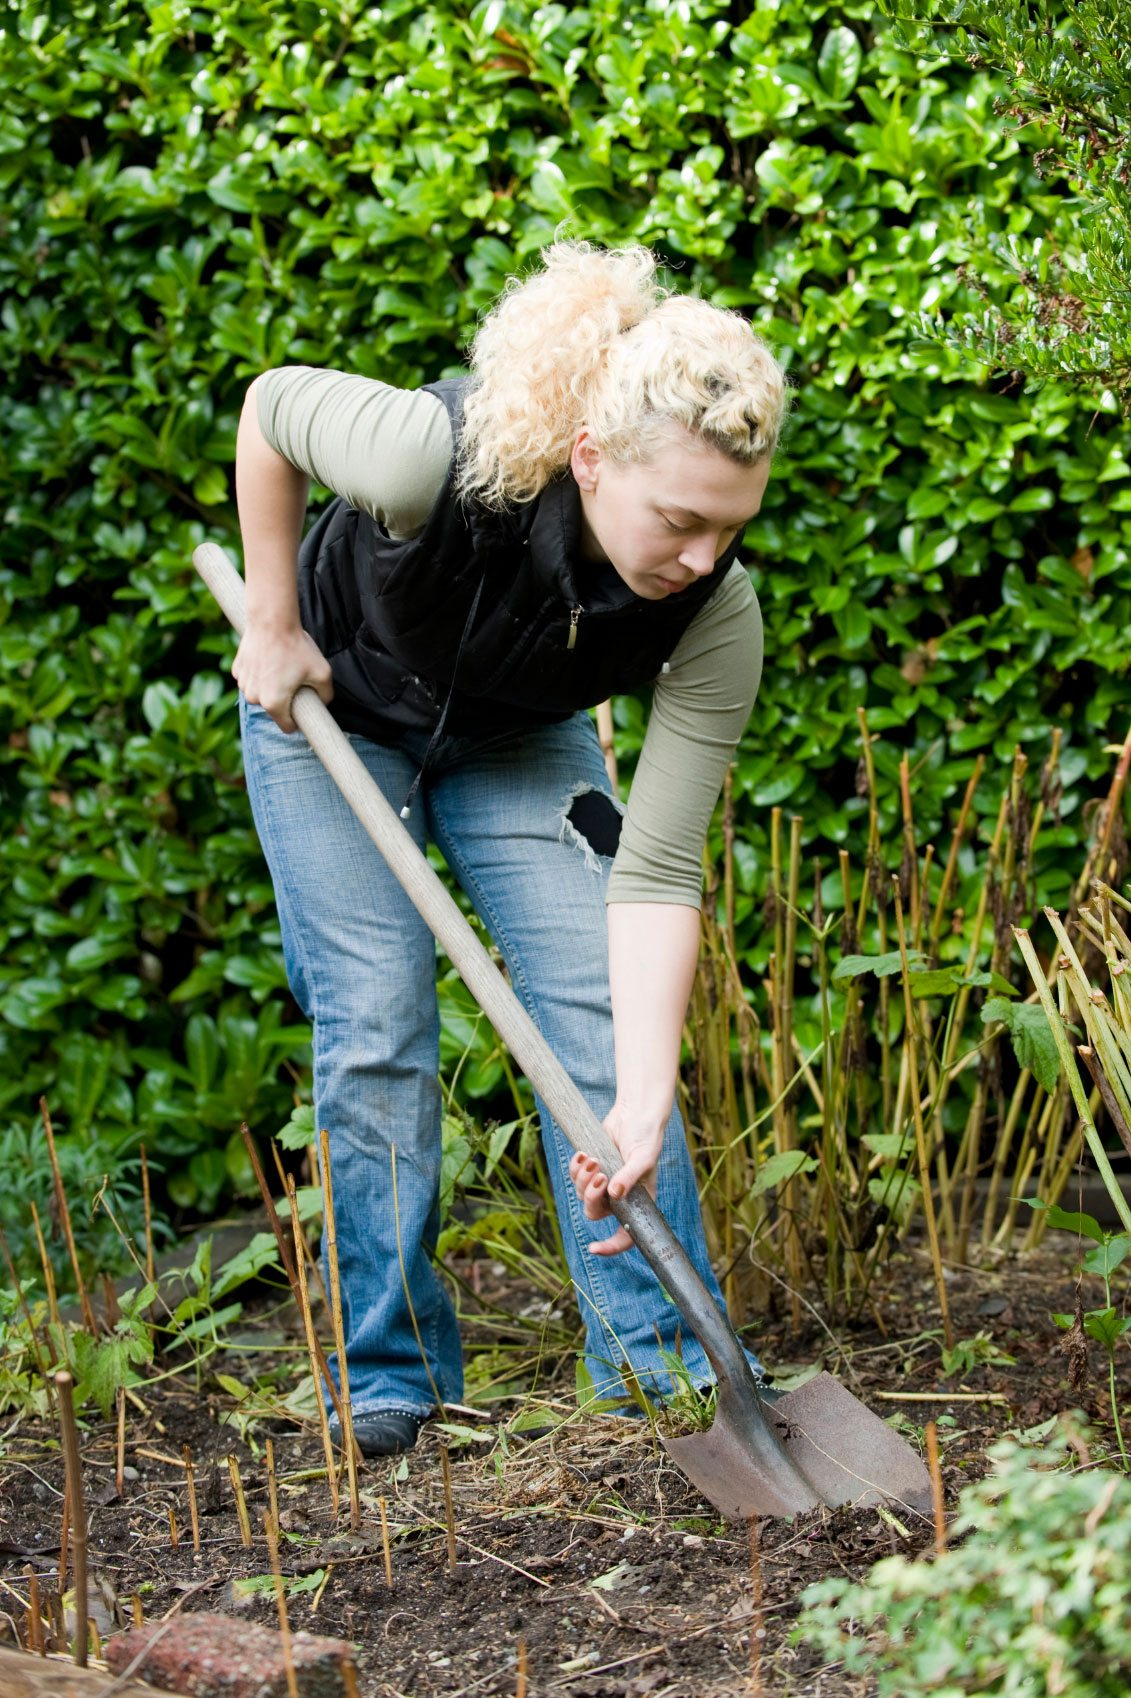 Image Result For How To Start A Garden Without Tilling